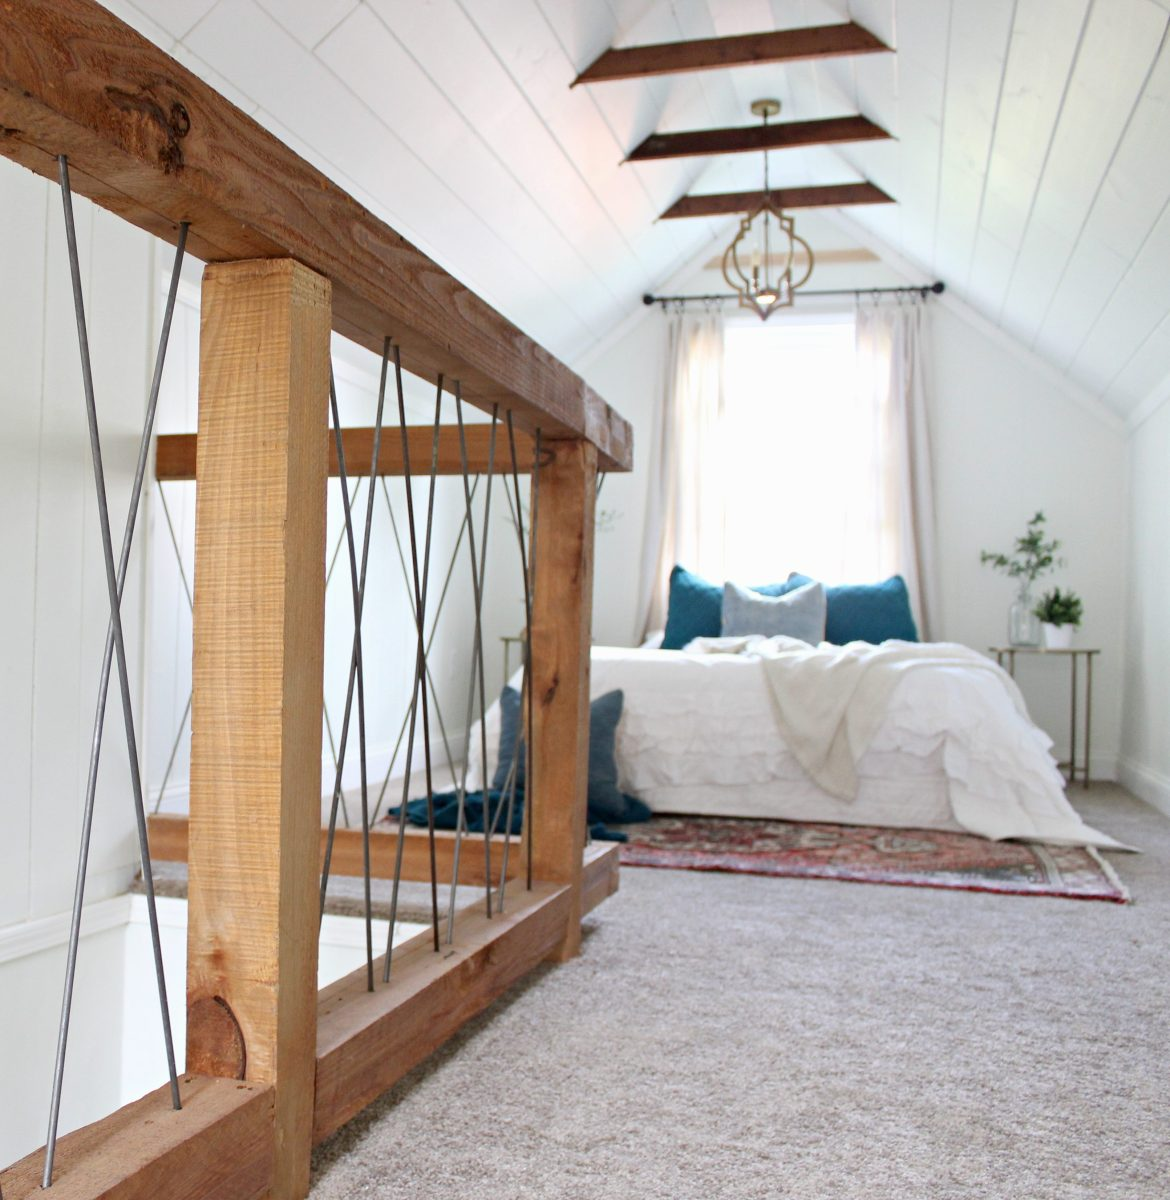 Chesterfield Cottage Reveal: Part 2 {Attic Bedroom}